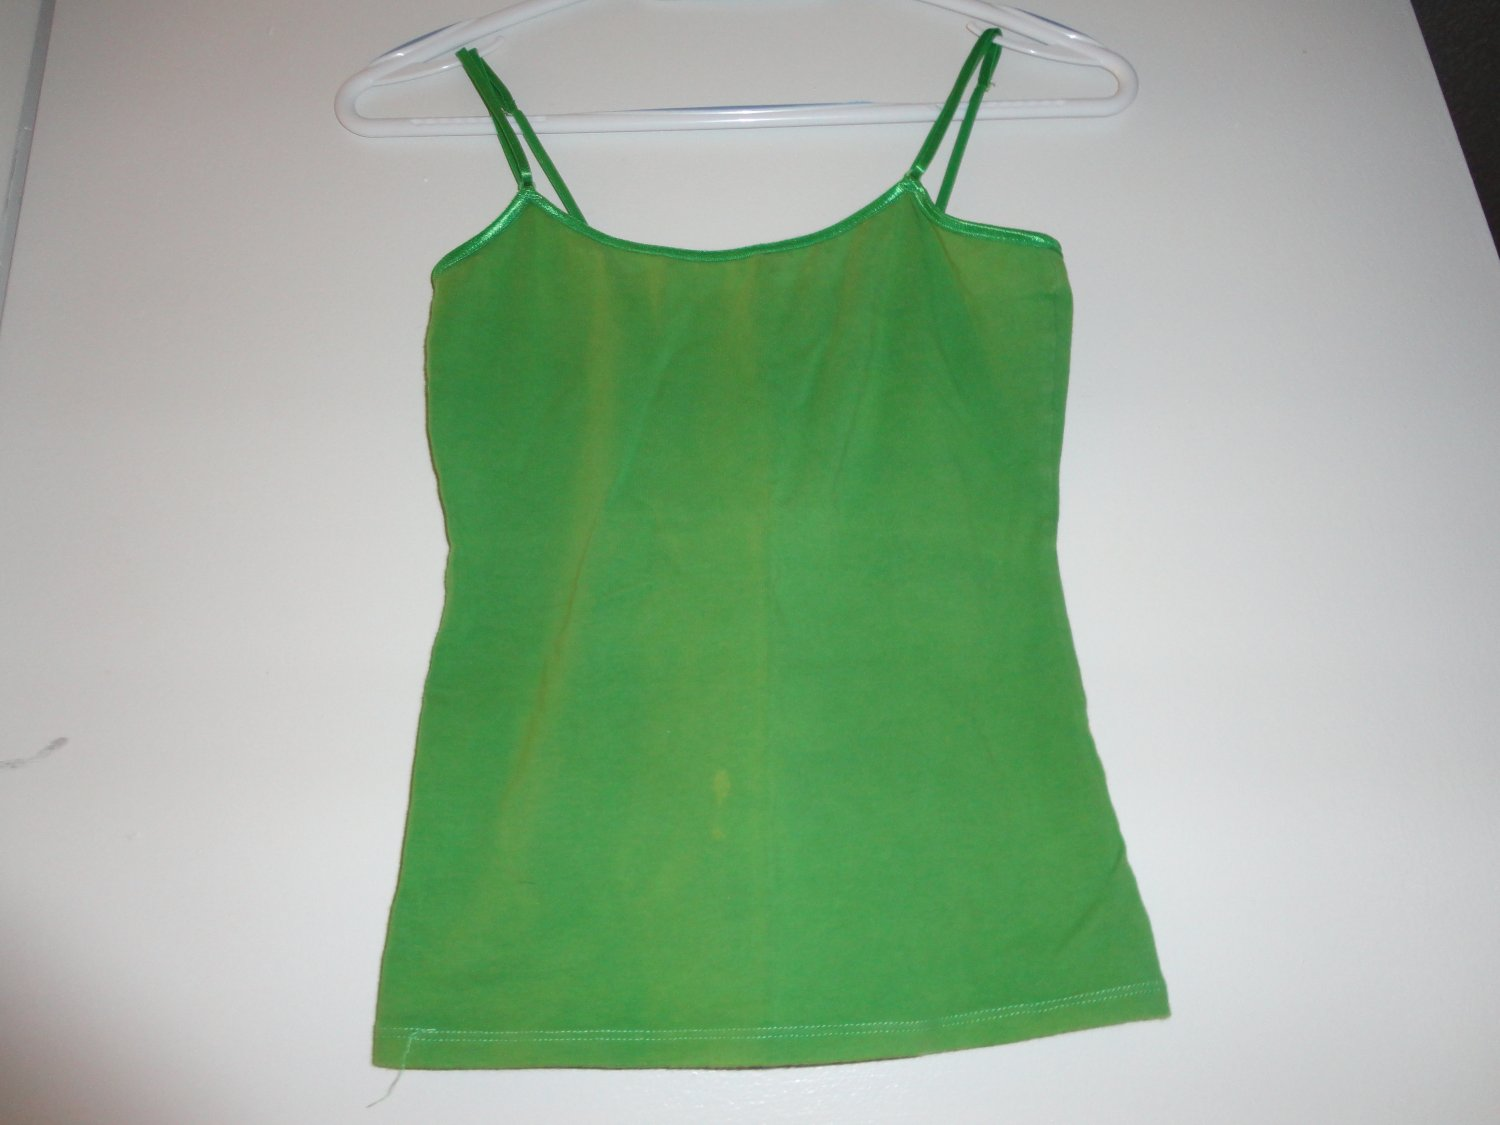 ZENANA OUTFITTERS LIGHT GREEN SPAGHETTI STRAP SHIRT SIZE: SMALL